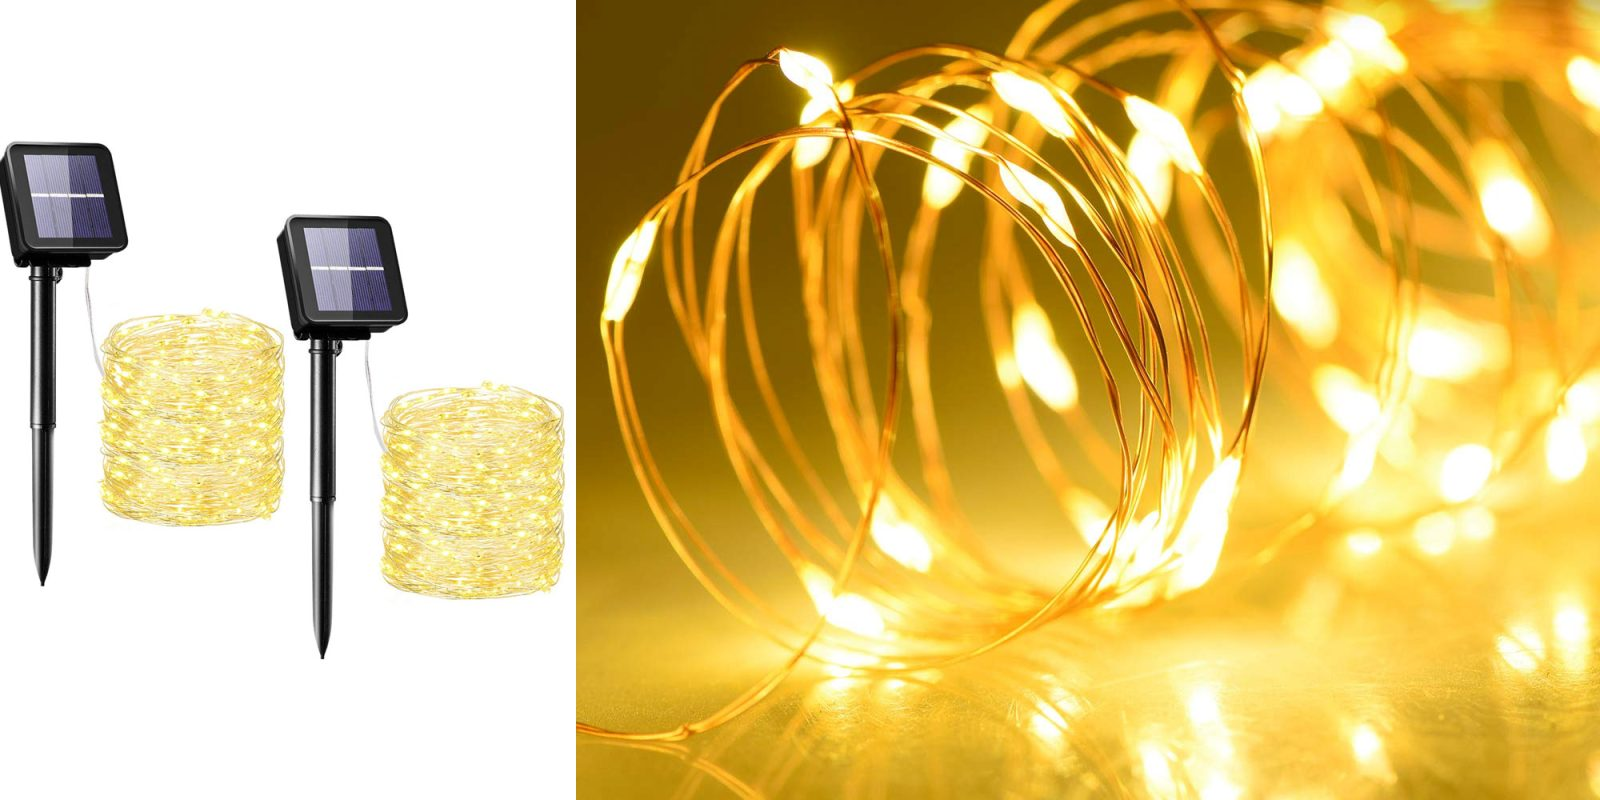 Use these solar string lights to upgrade your outdoor space for just $10